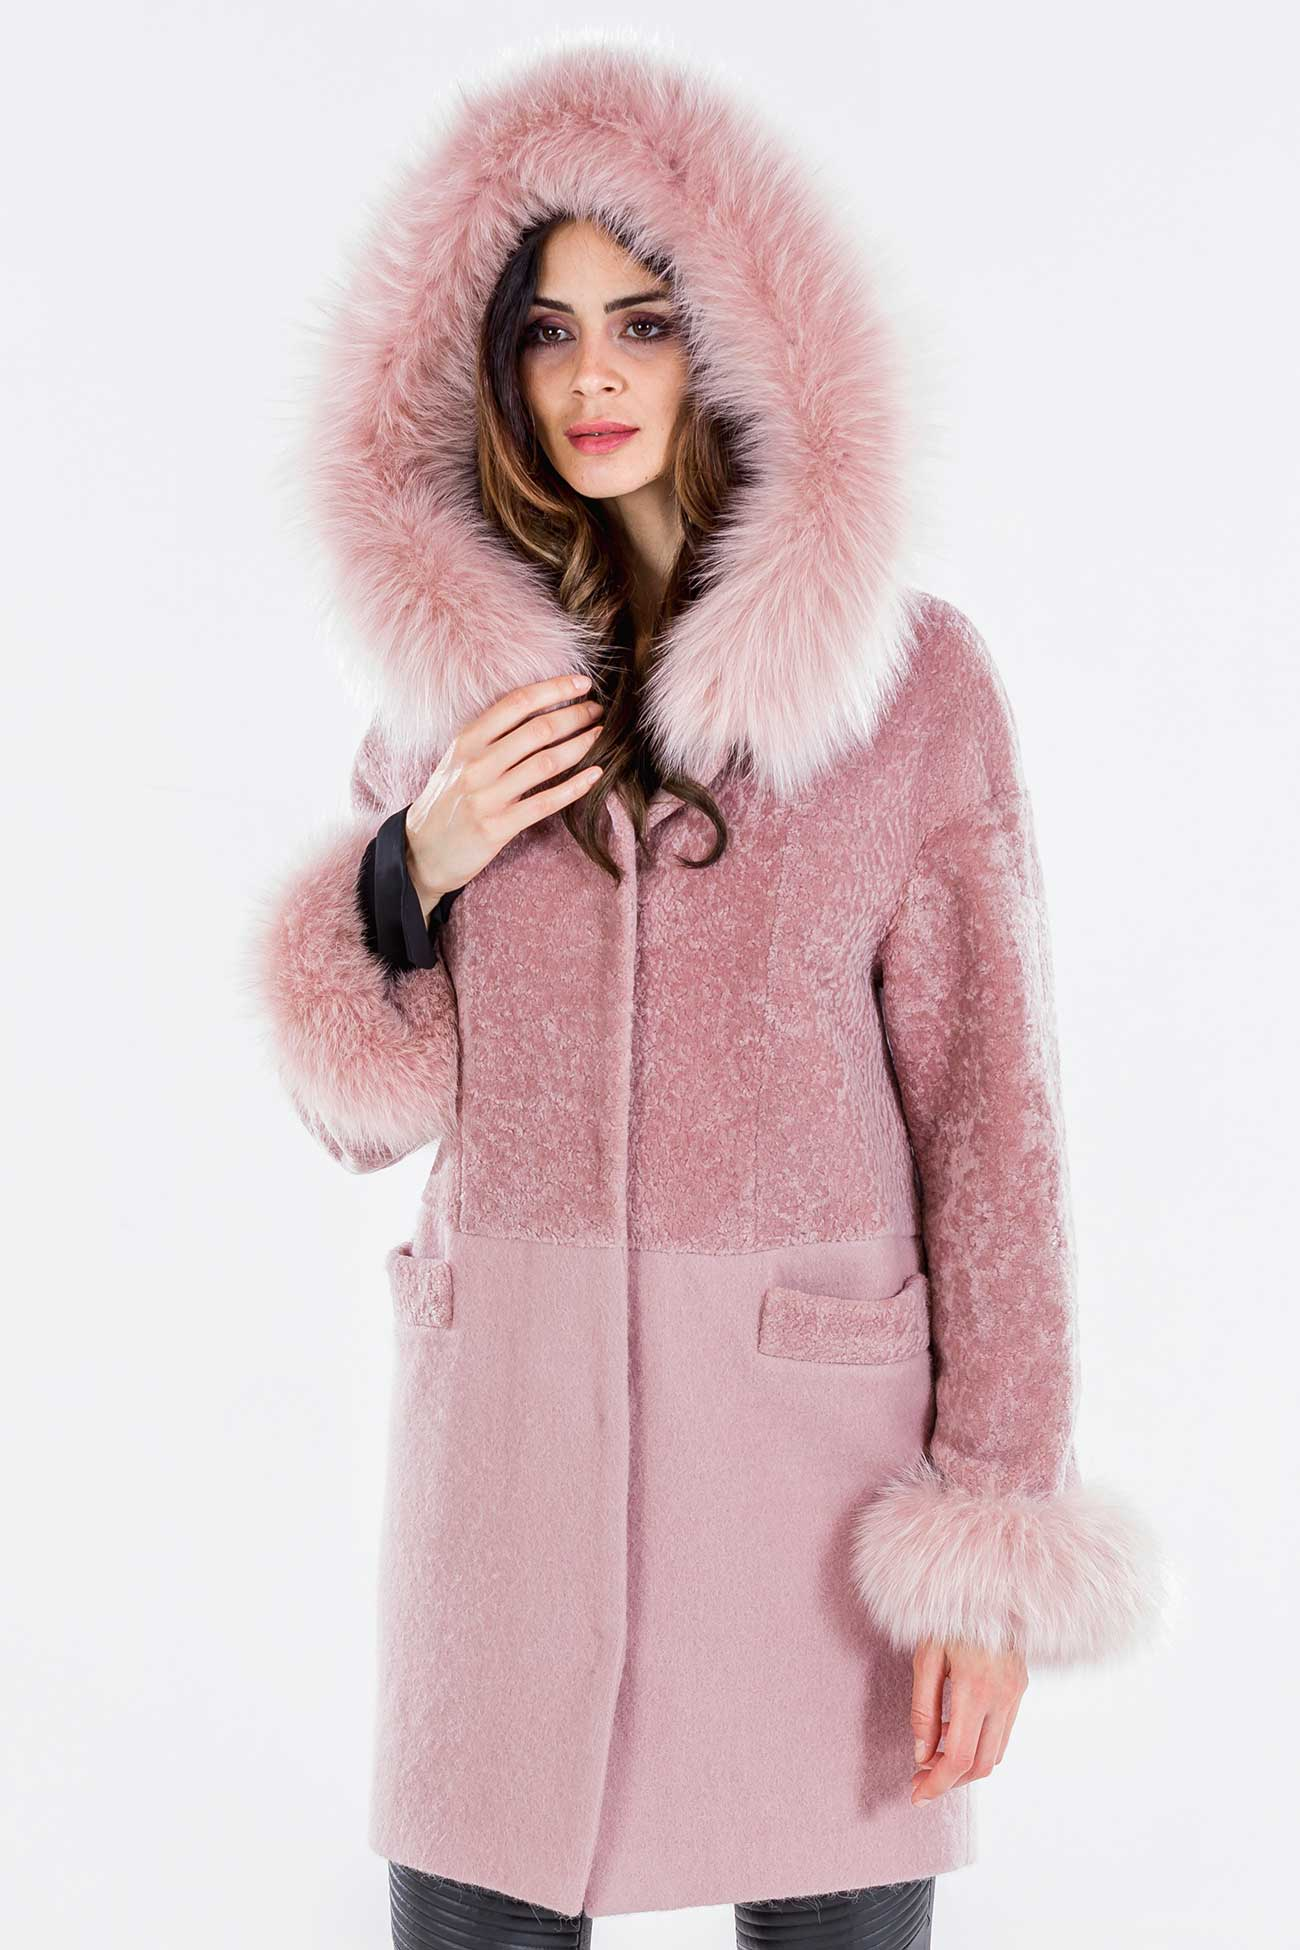 Shearling coat and mohair wool